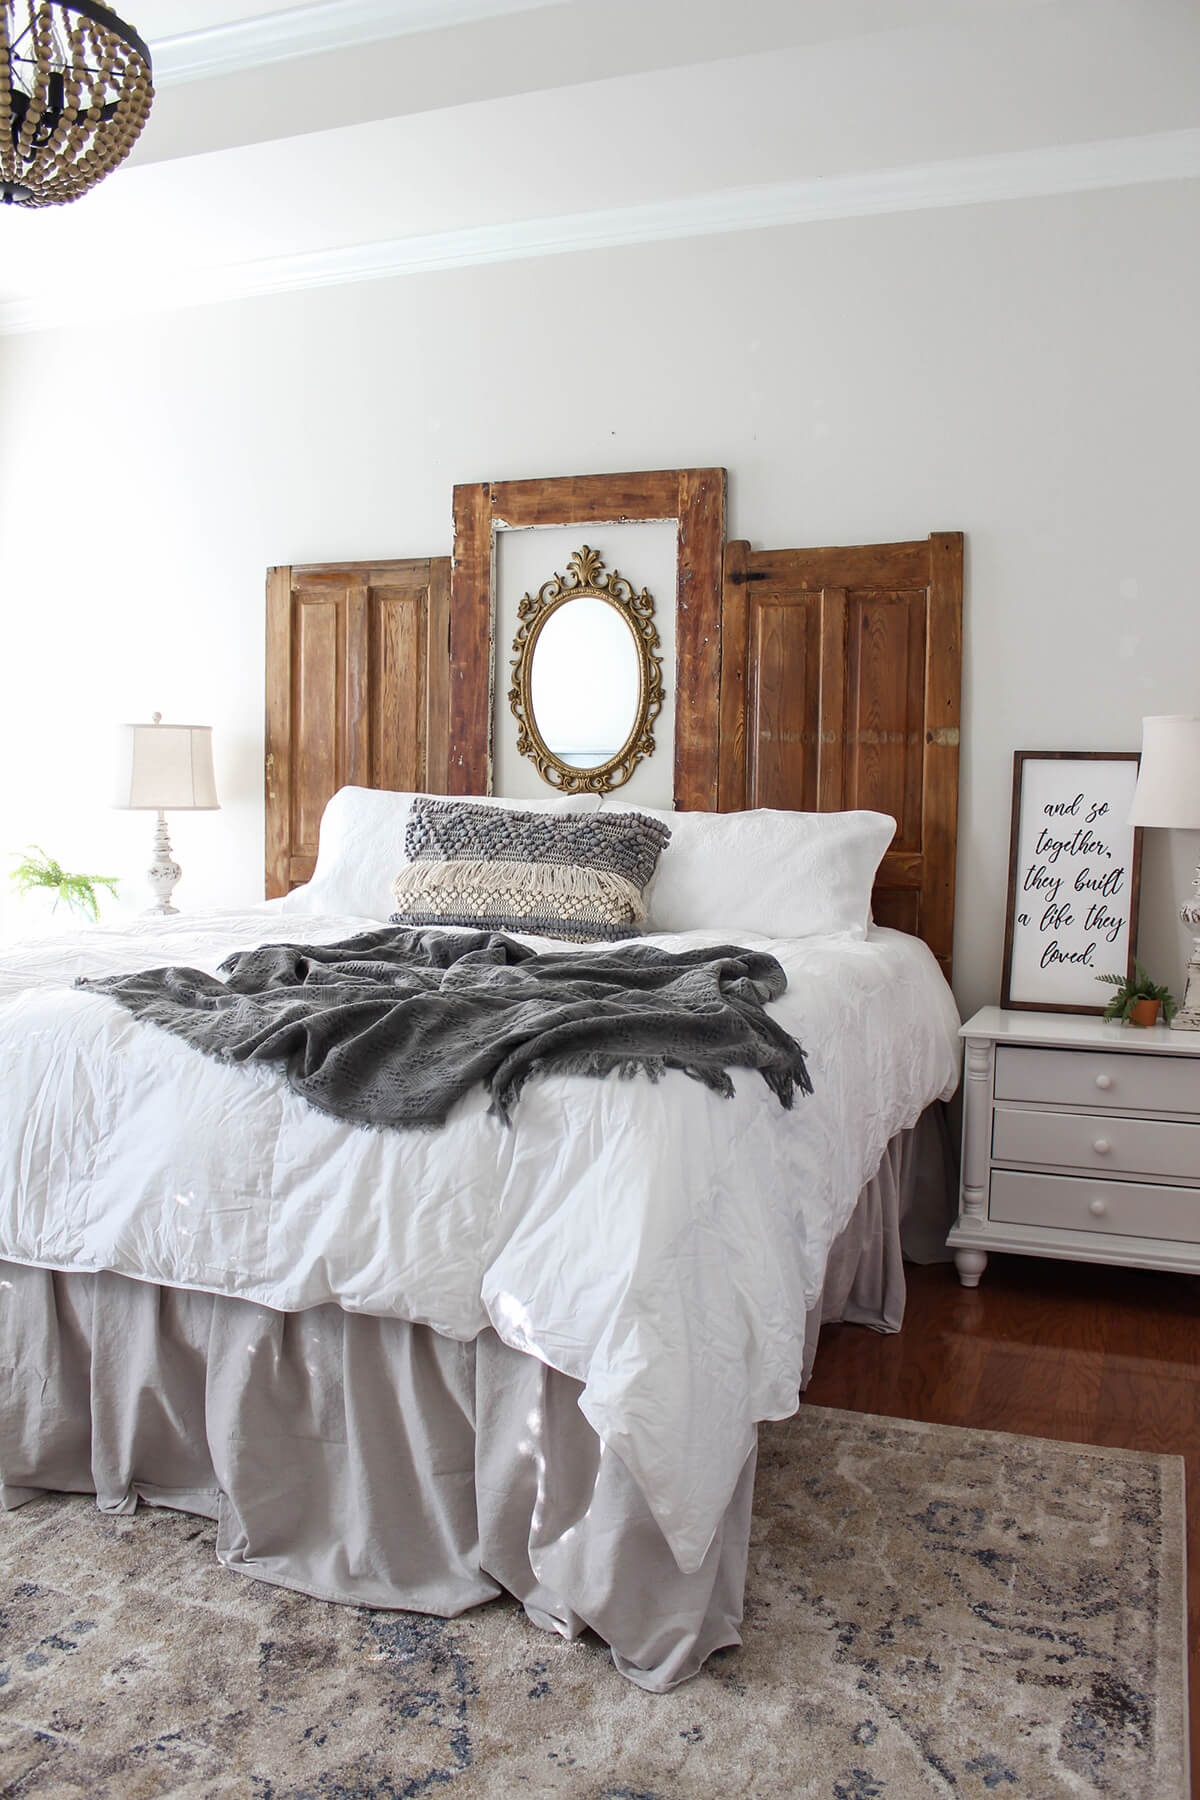 Headboard DIY with Series of Doors